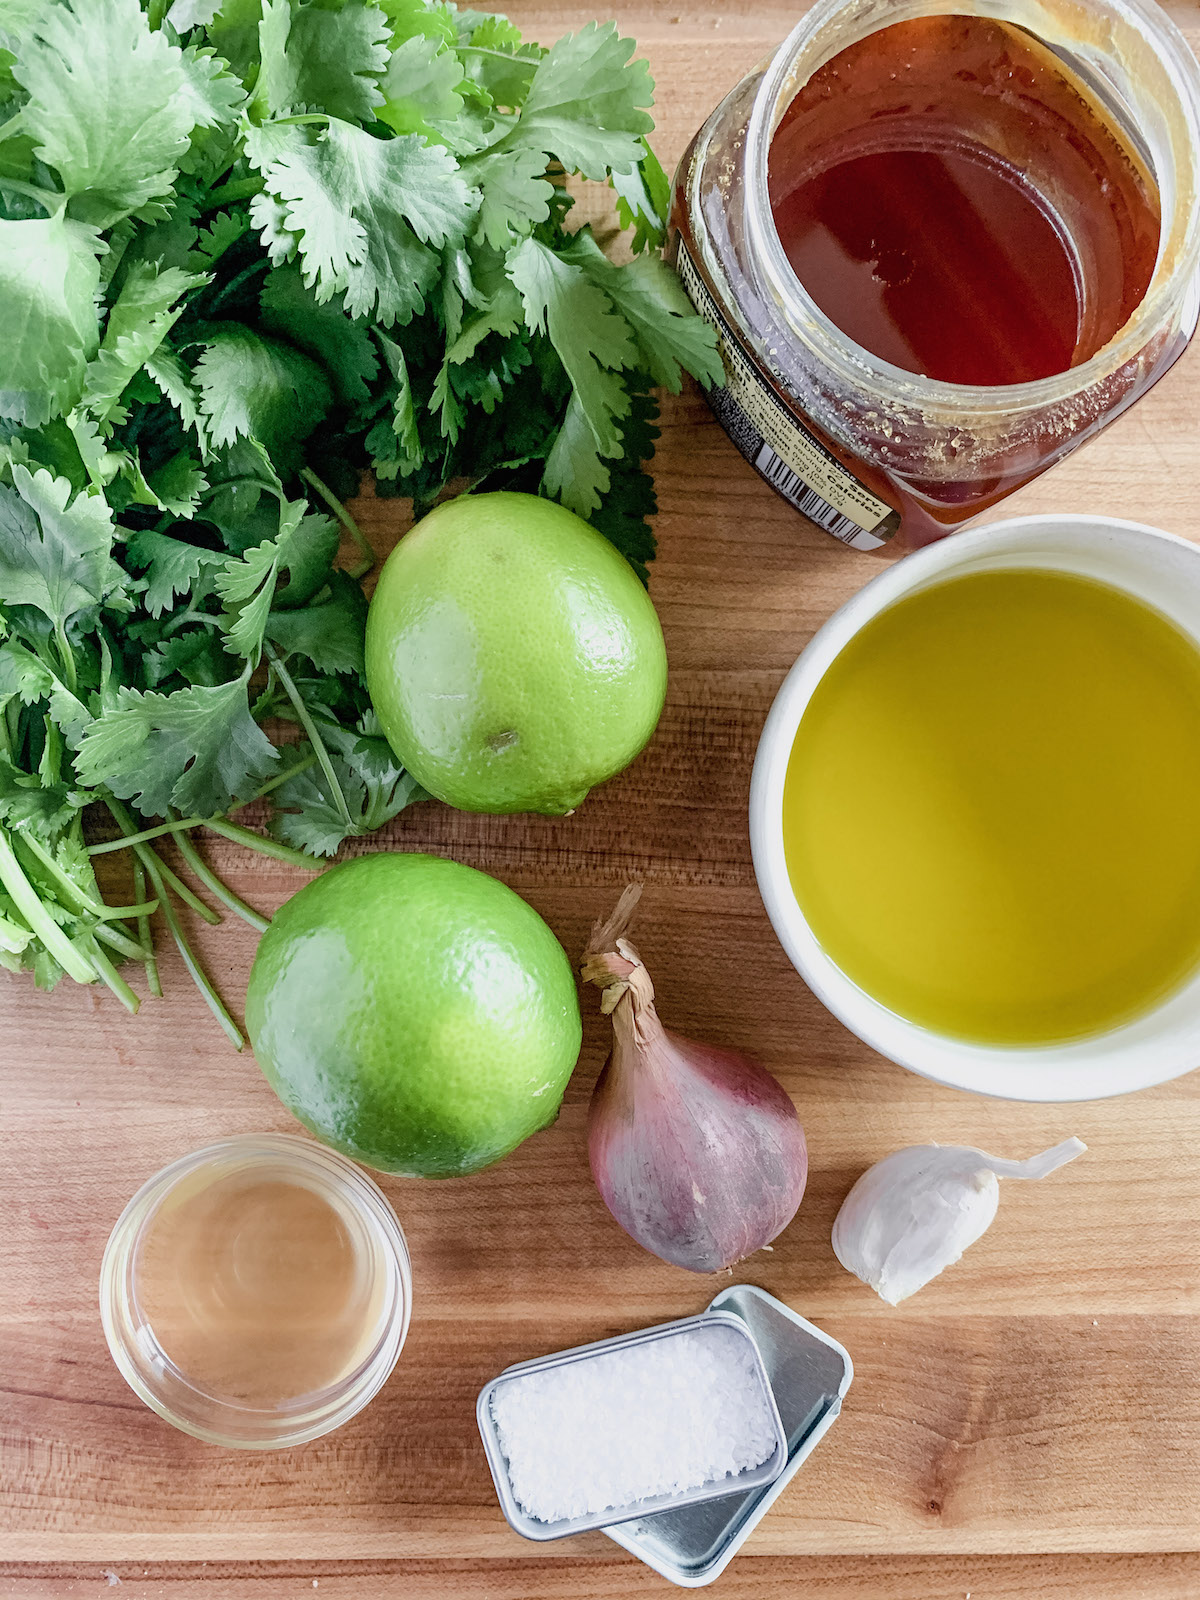 Cilantro lime dressing ingredients on a wood cutting board. A bunch of fresh cilantro, two limes, one shallot, garlic clove, bowl of olive oil, small bowl with vinegar, jar of honey and small tin of salt.